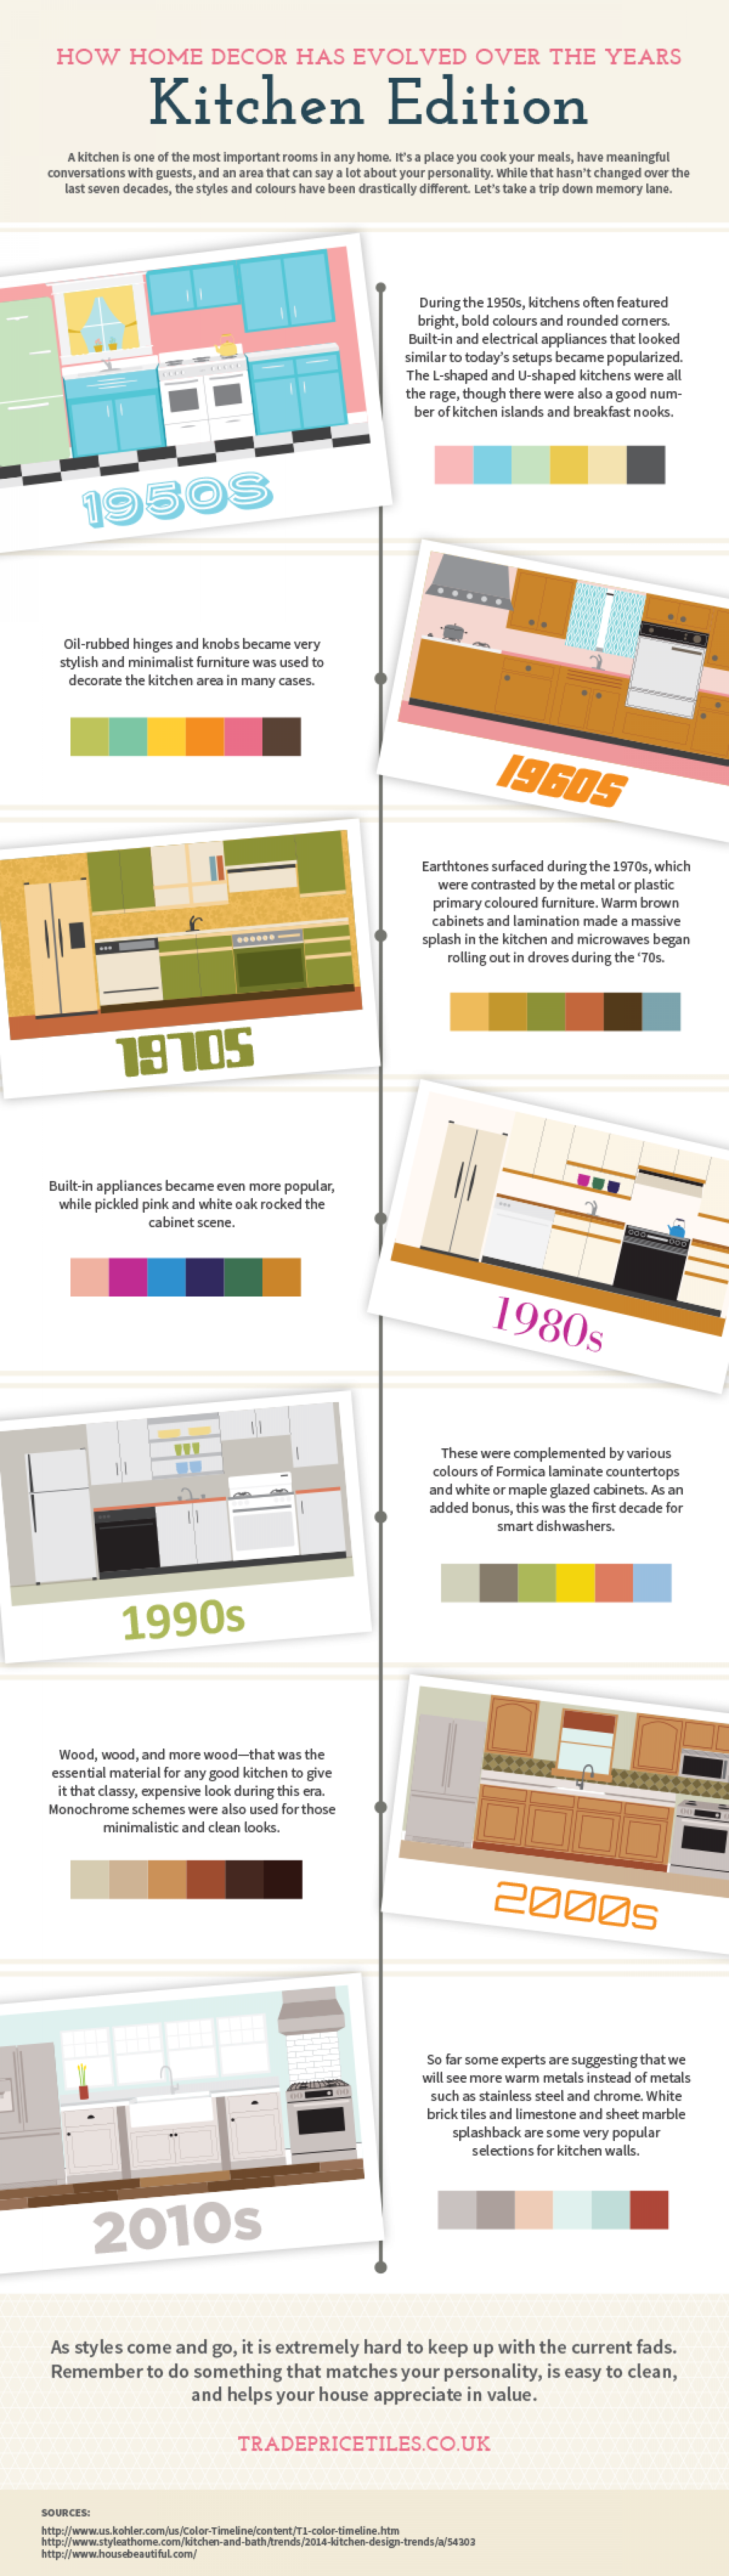 Evolution of Kitchen Decor Infographic